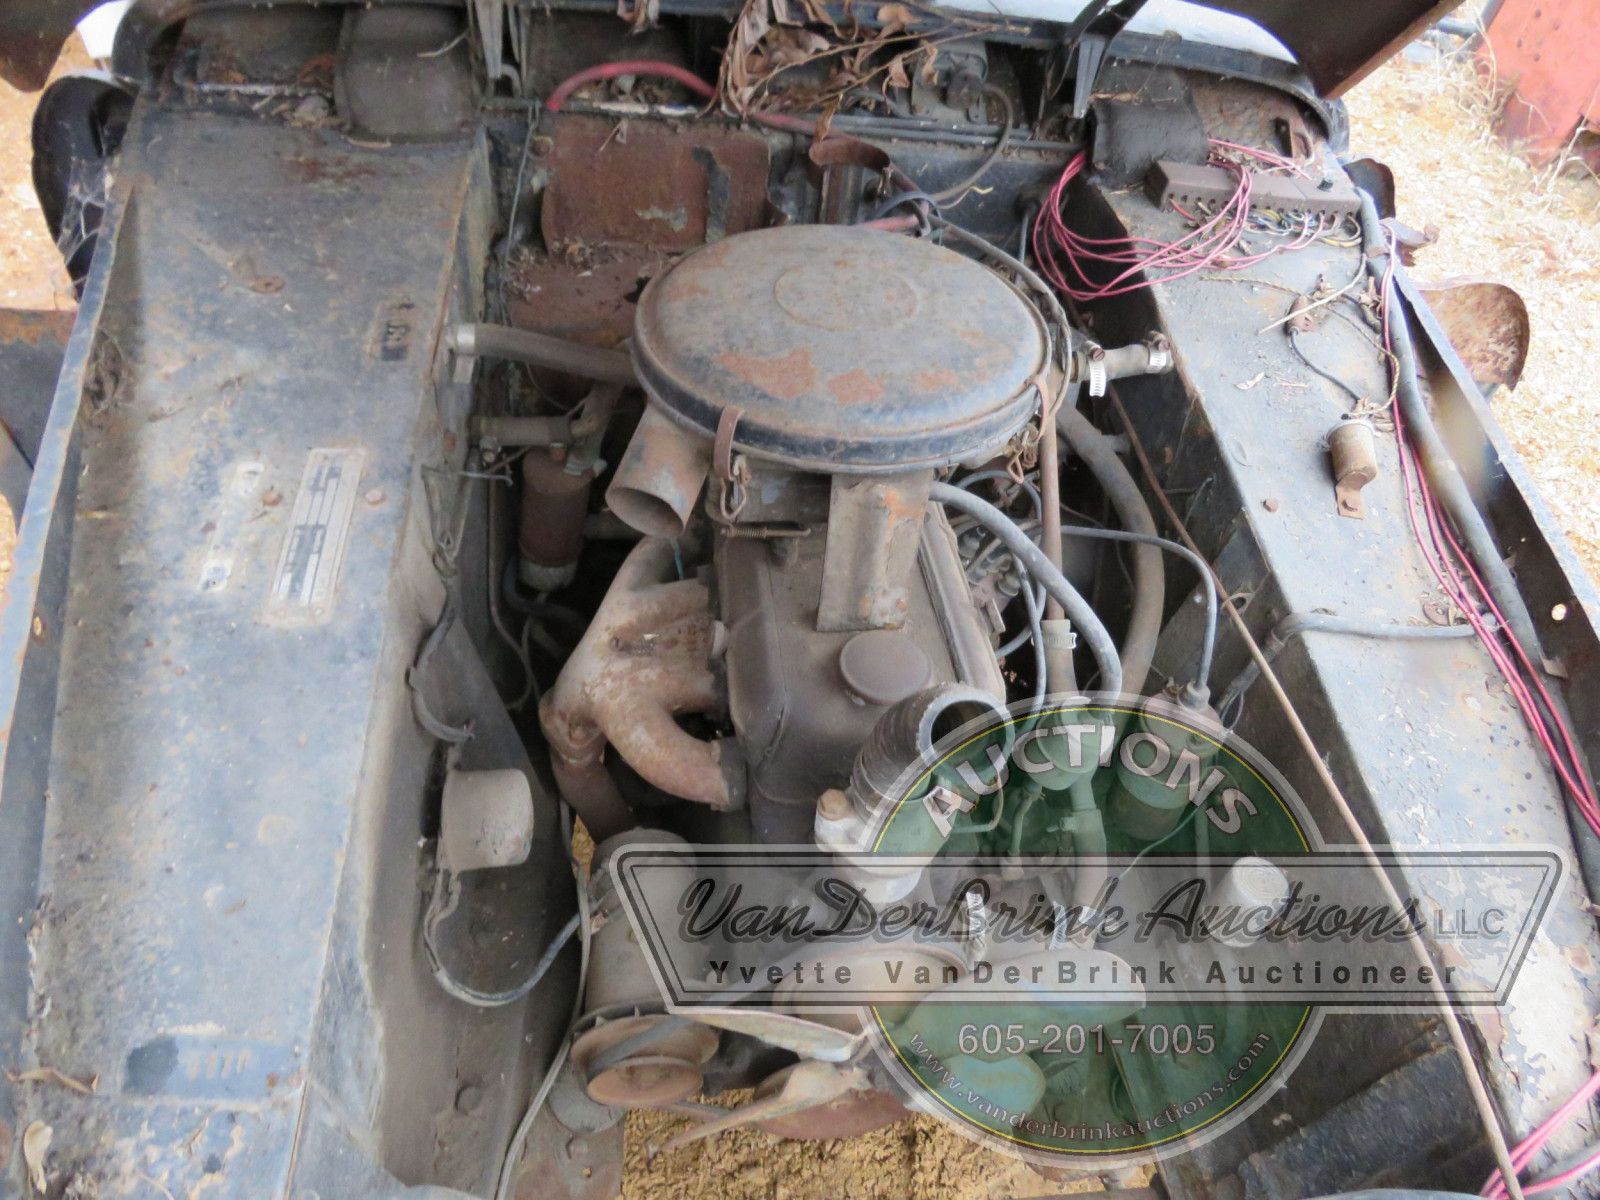 Borgward Coupe for project or parts - Image 4